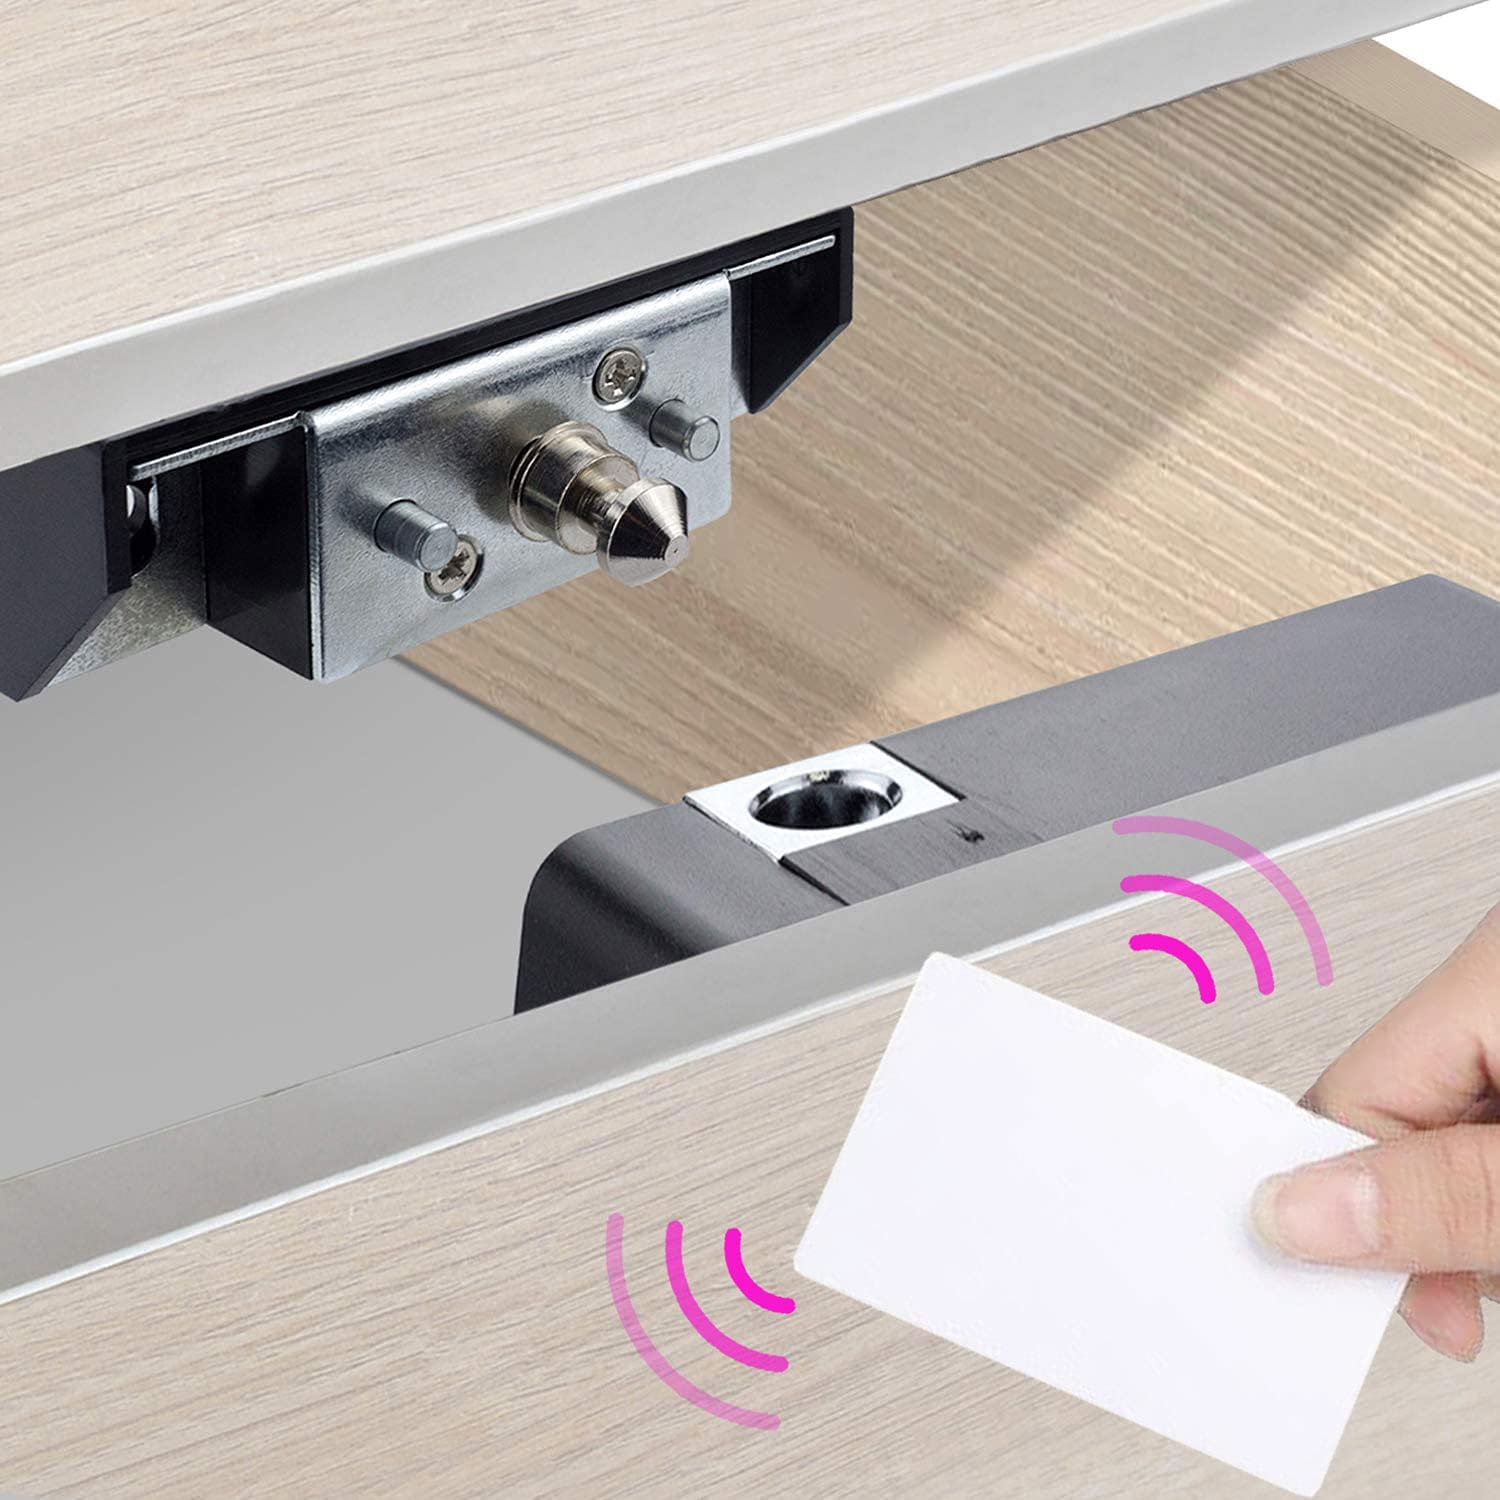 CODACE Electronic Hidden RFID Cabinet Drawer Lock, DIY Lock with RFID Card Fit for Wooden Cabinet Cupboard Pantry Shelf Doors